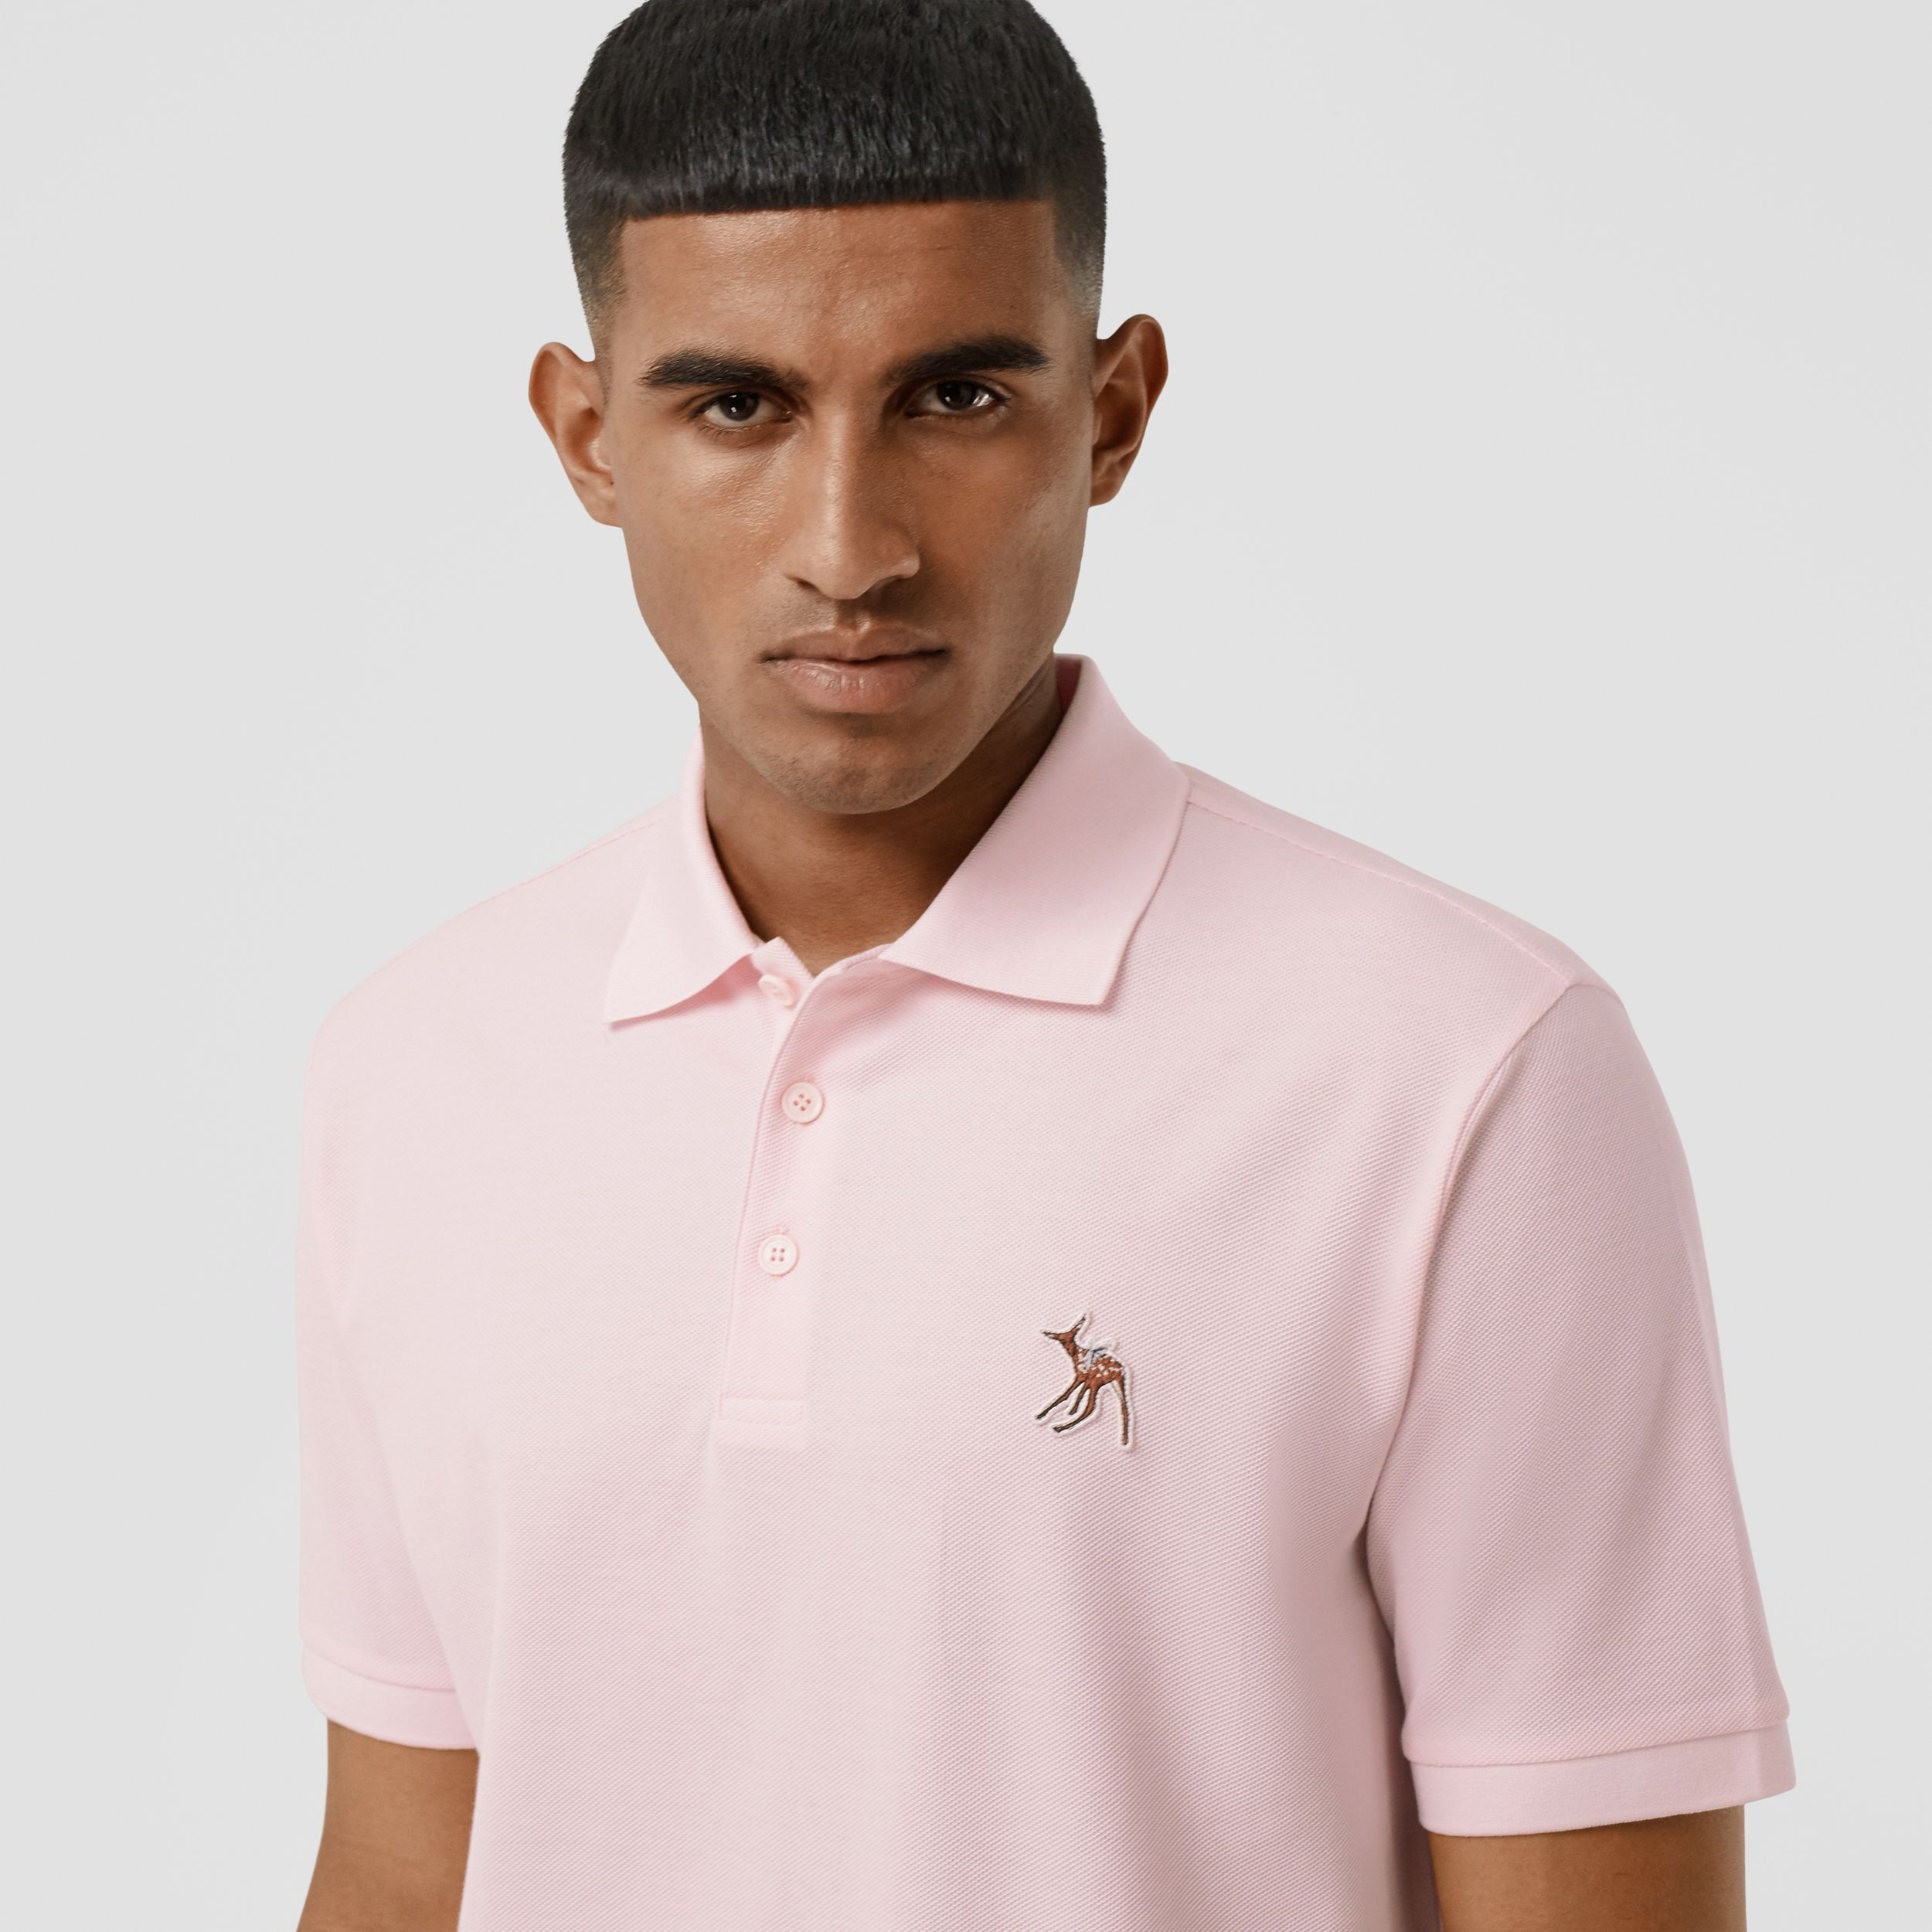 Deer Appliqué Cotton Piqué Polo Shirt in Alabaster Pink - Men | Burberry Australia - 2